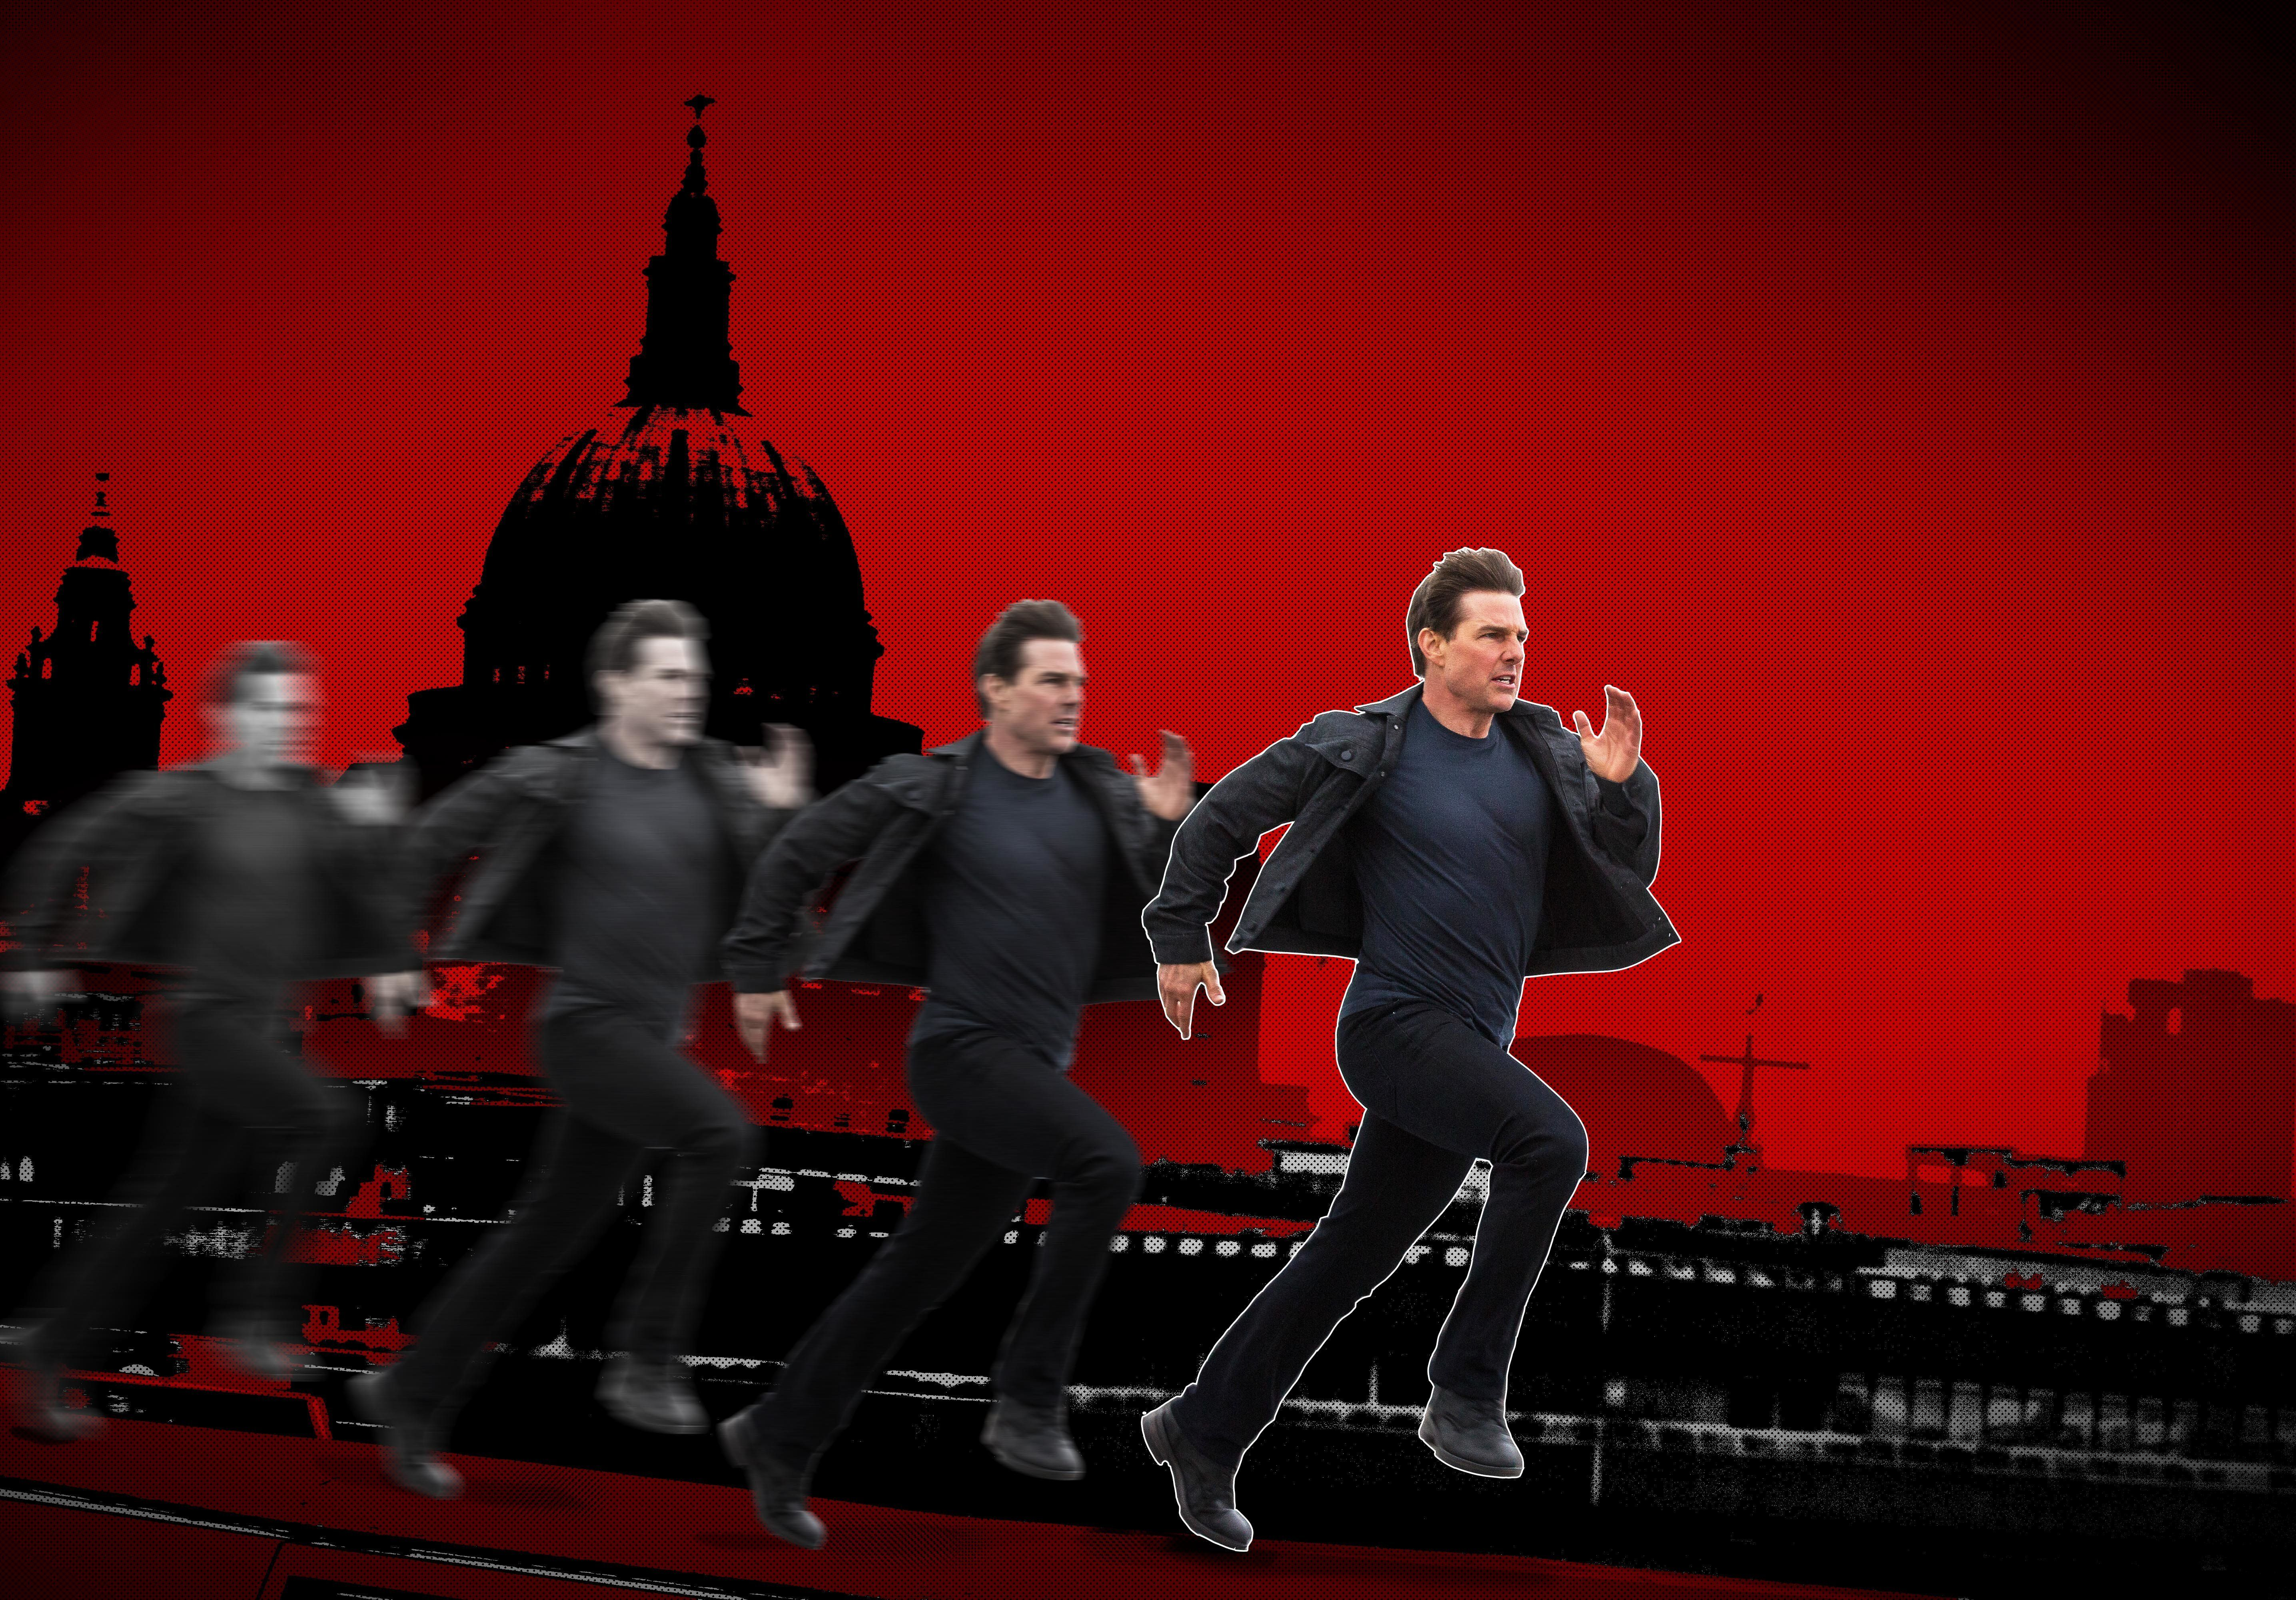 """In """"Mission Impossible: Fallout,"""" Tom Cruise out-Cruises himself?"""